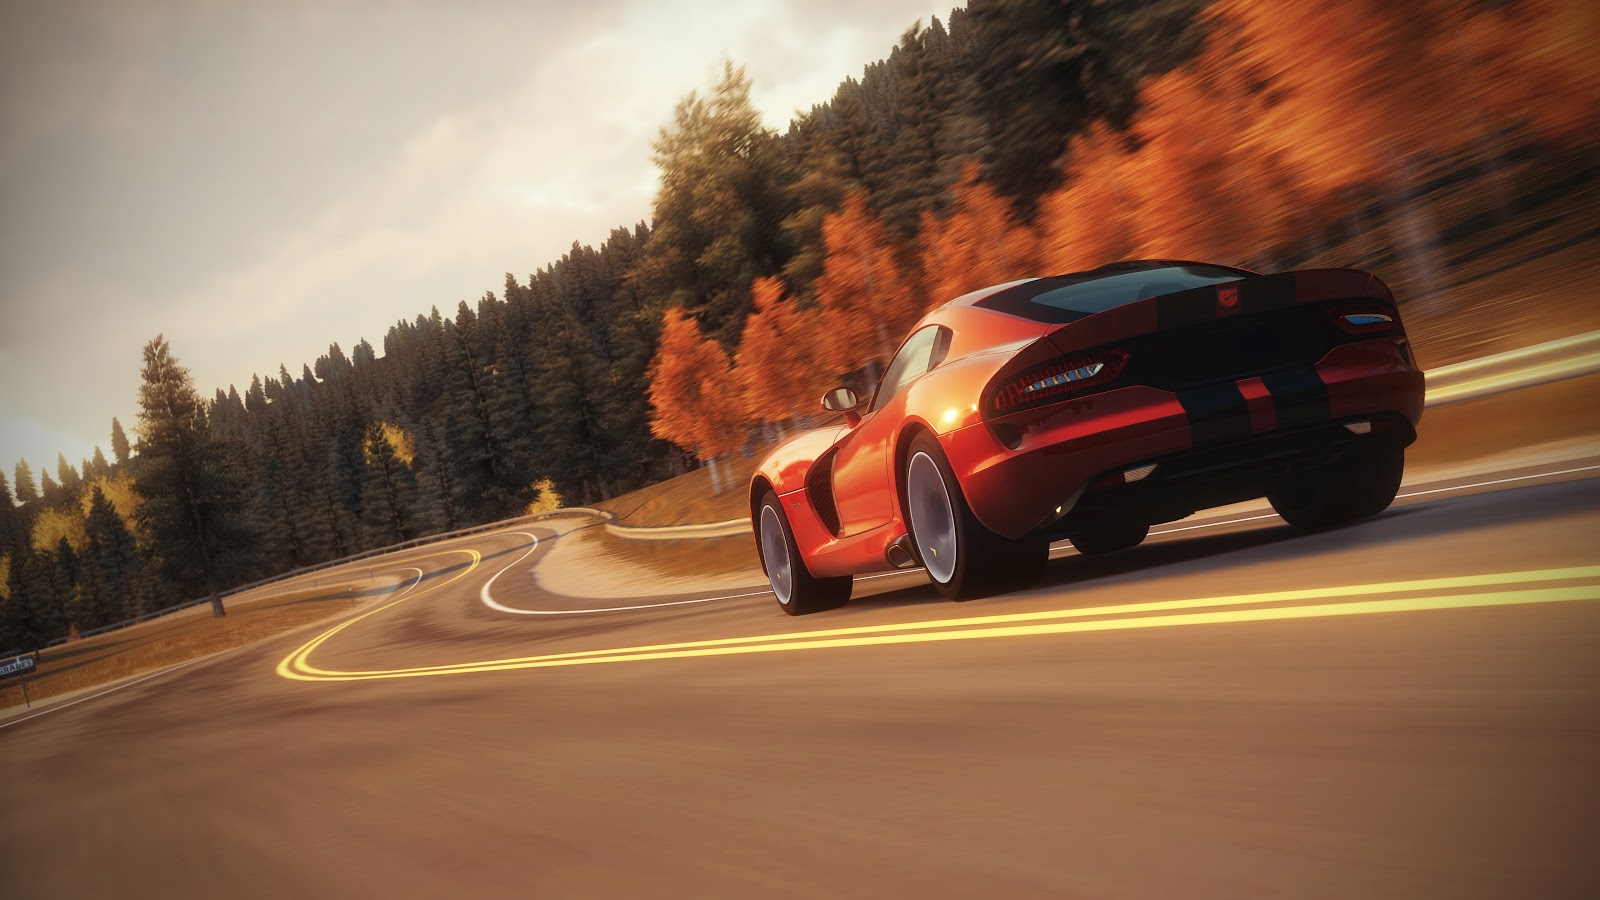 Forza Horizon HD & Widescreen Wallpaper 0.849198577446536